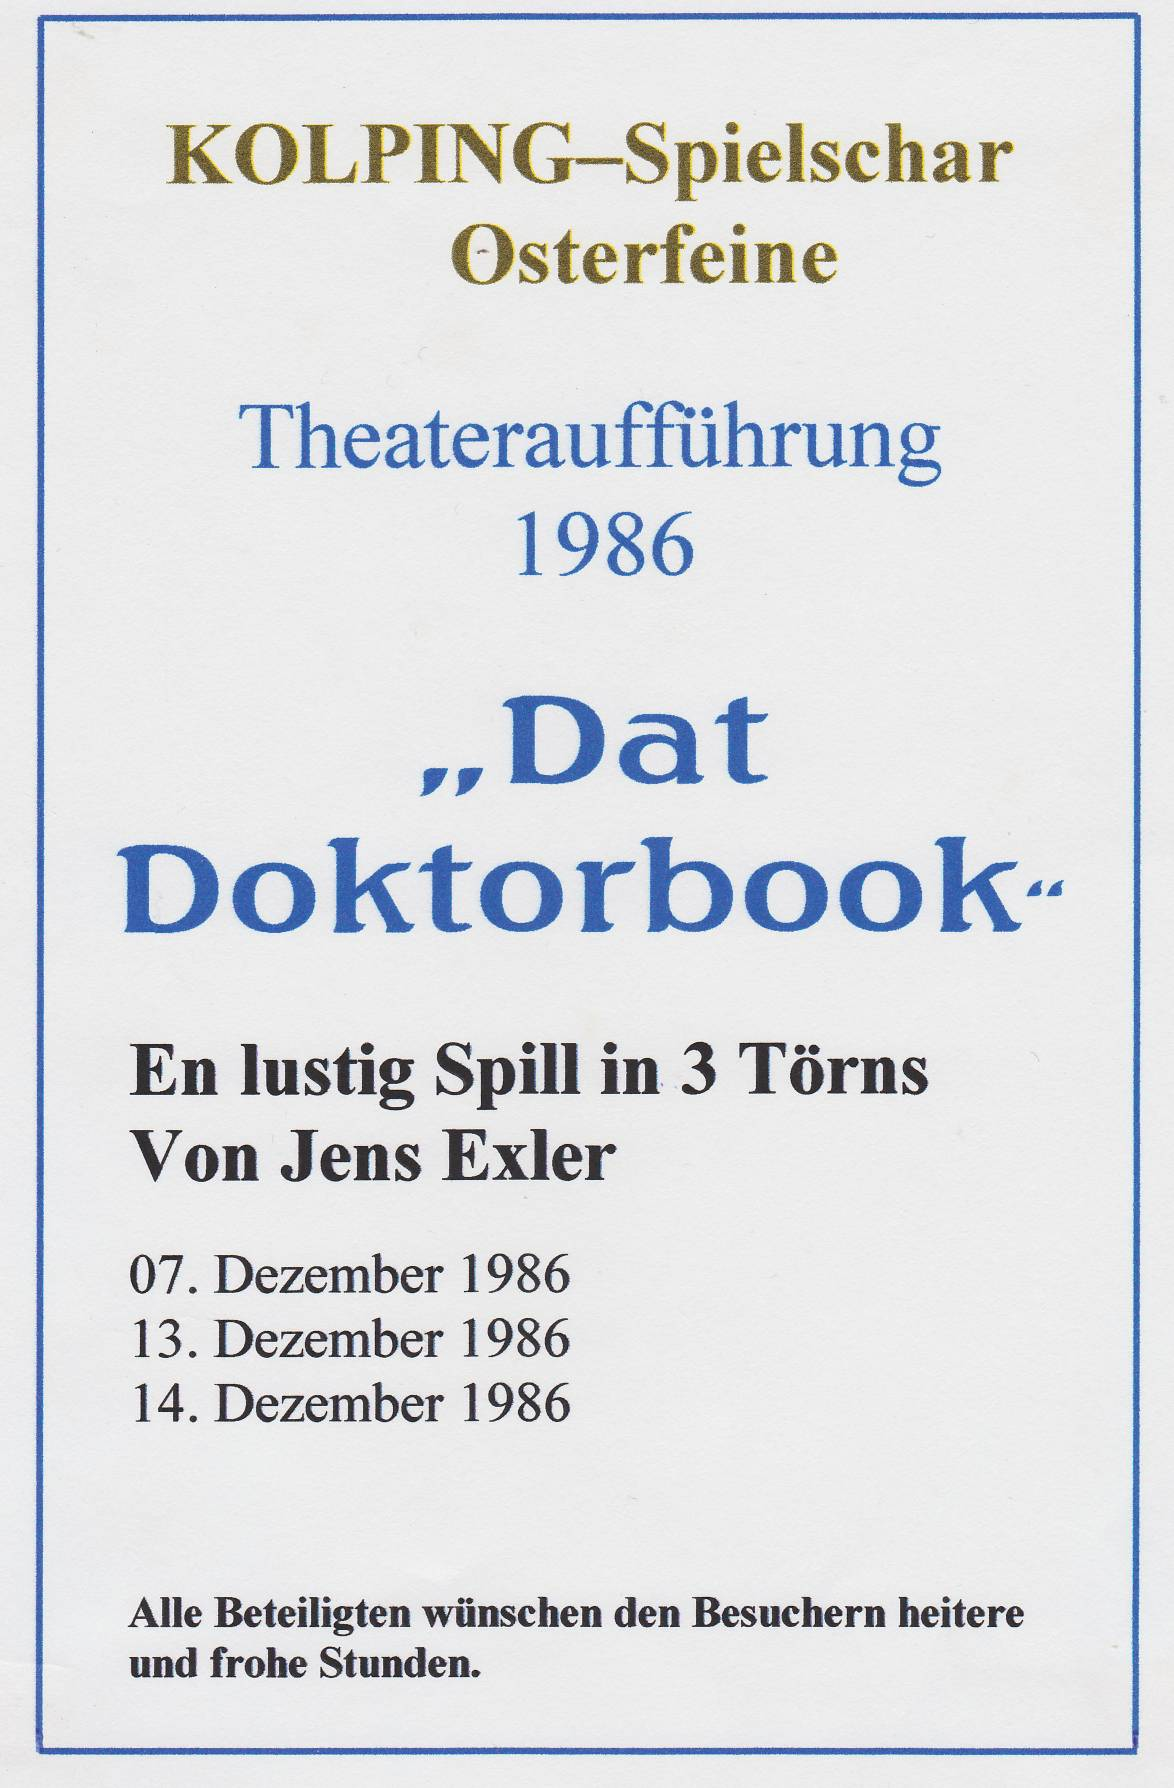 1986_Theater_Dat Doktorbook_3